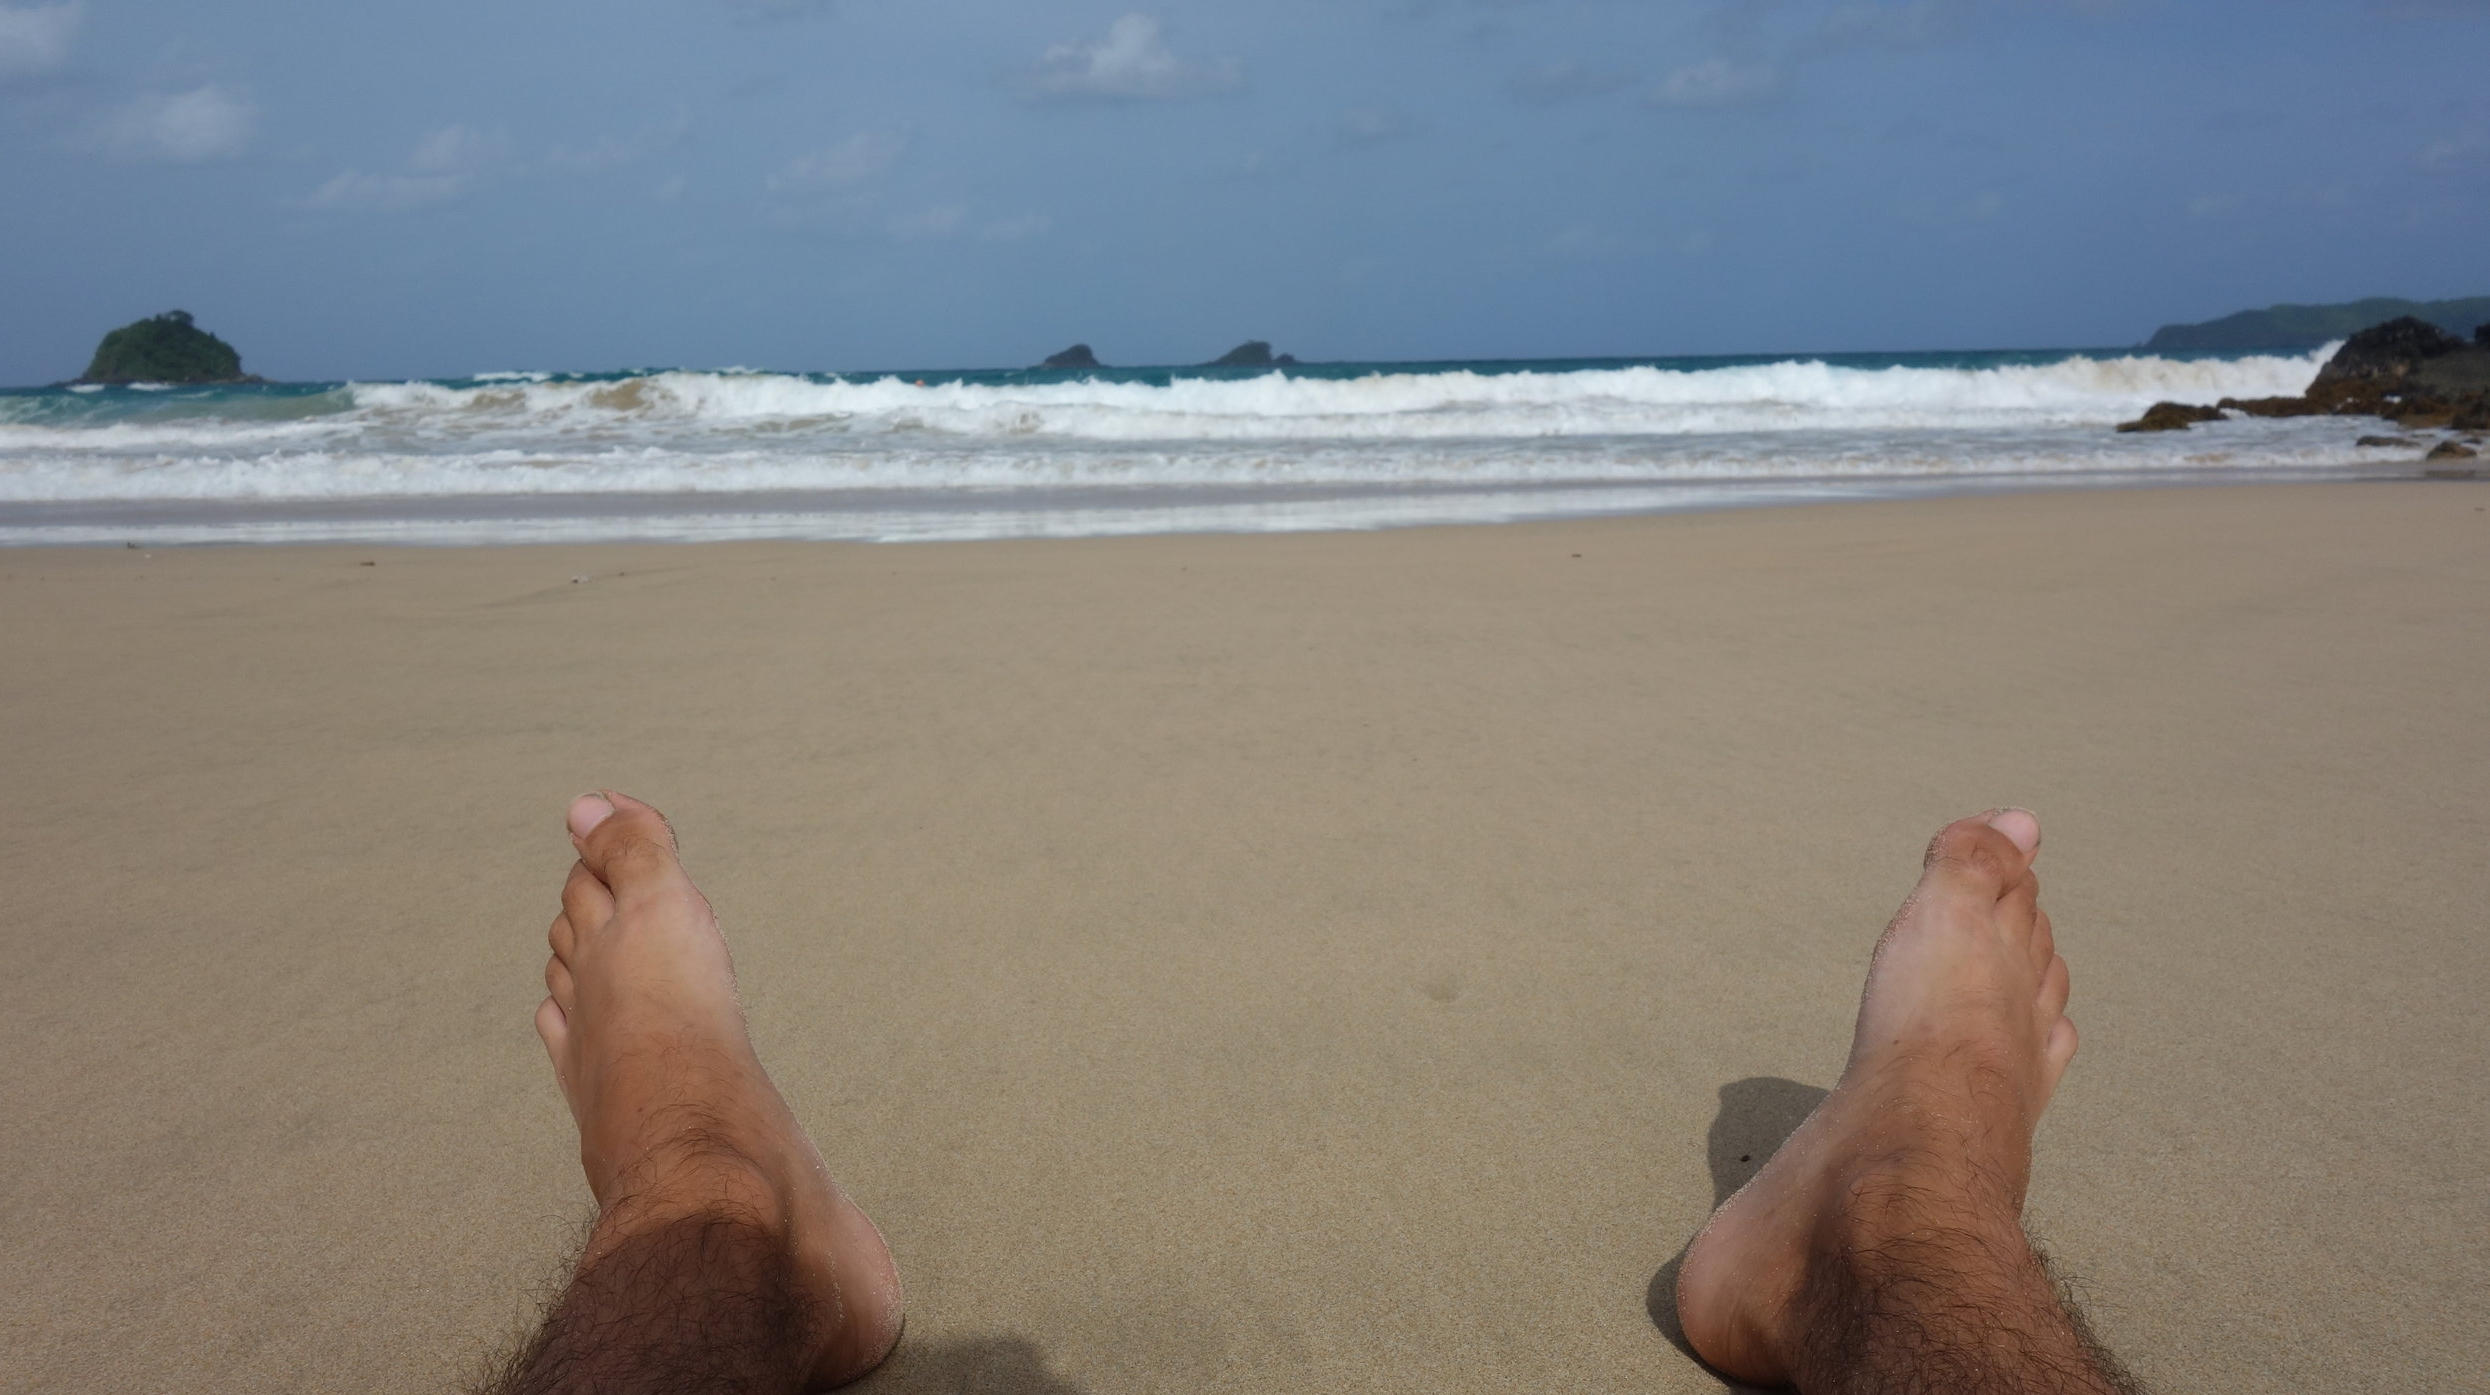 Relax at Nacpan beach - Located 45min-ride away from town, Nacpan is the perfect beach to chill out and sunbathe.